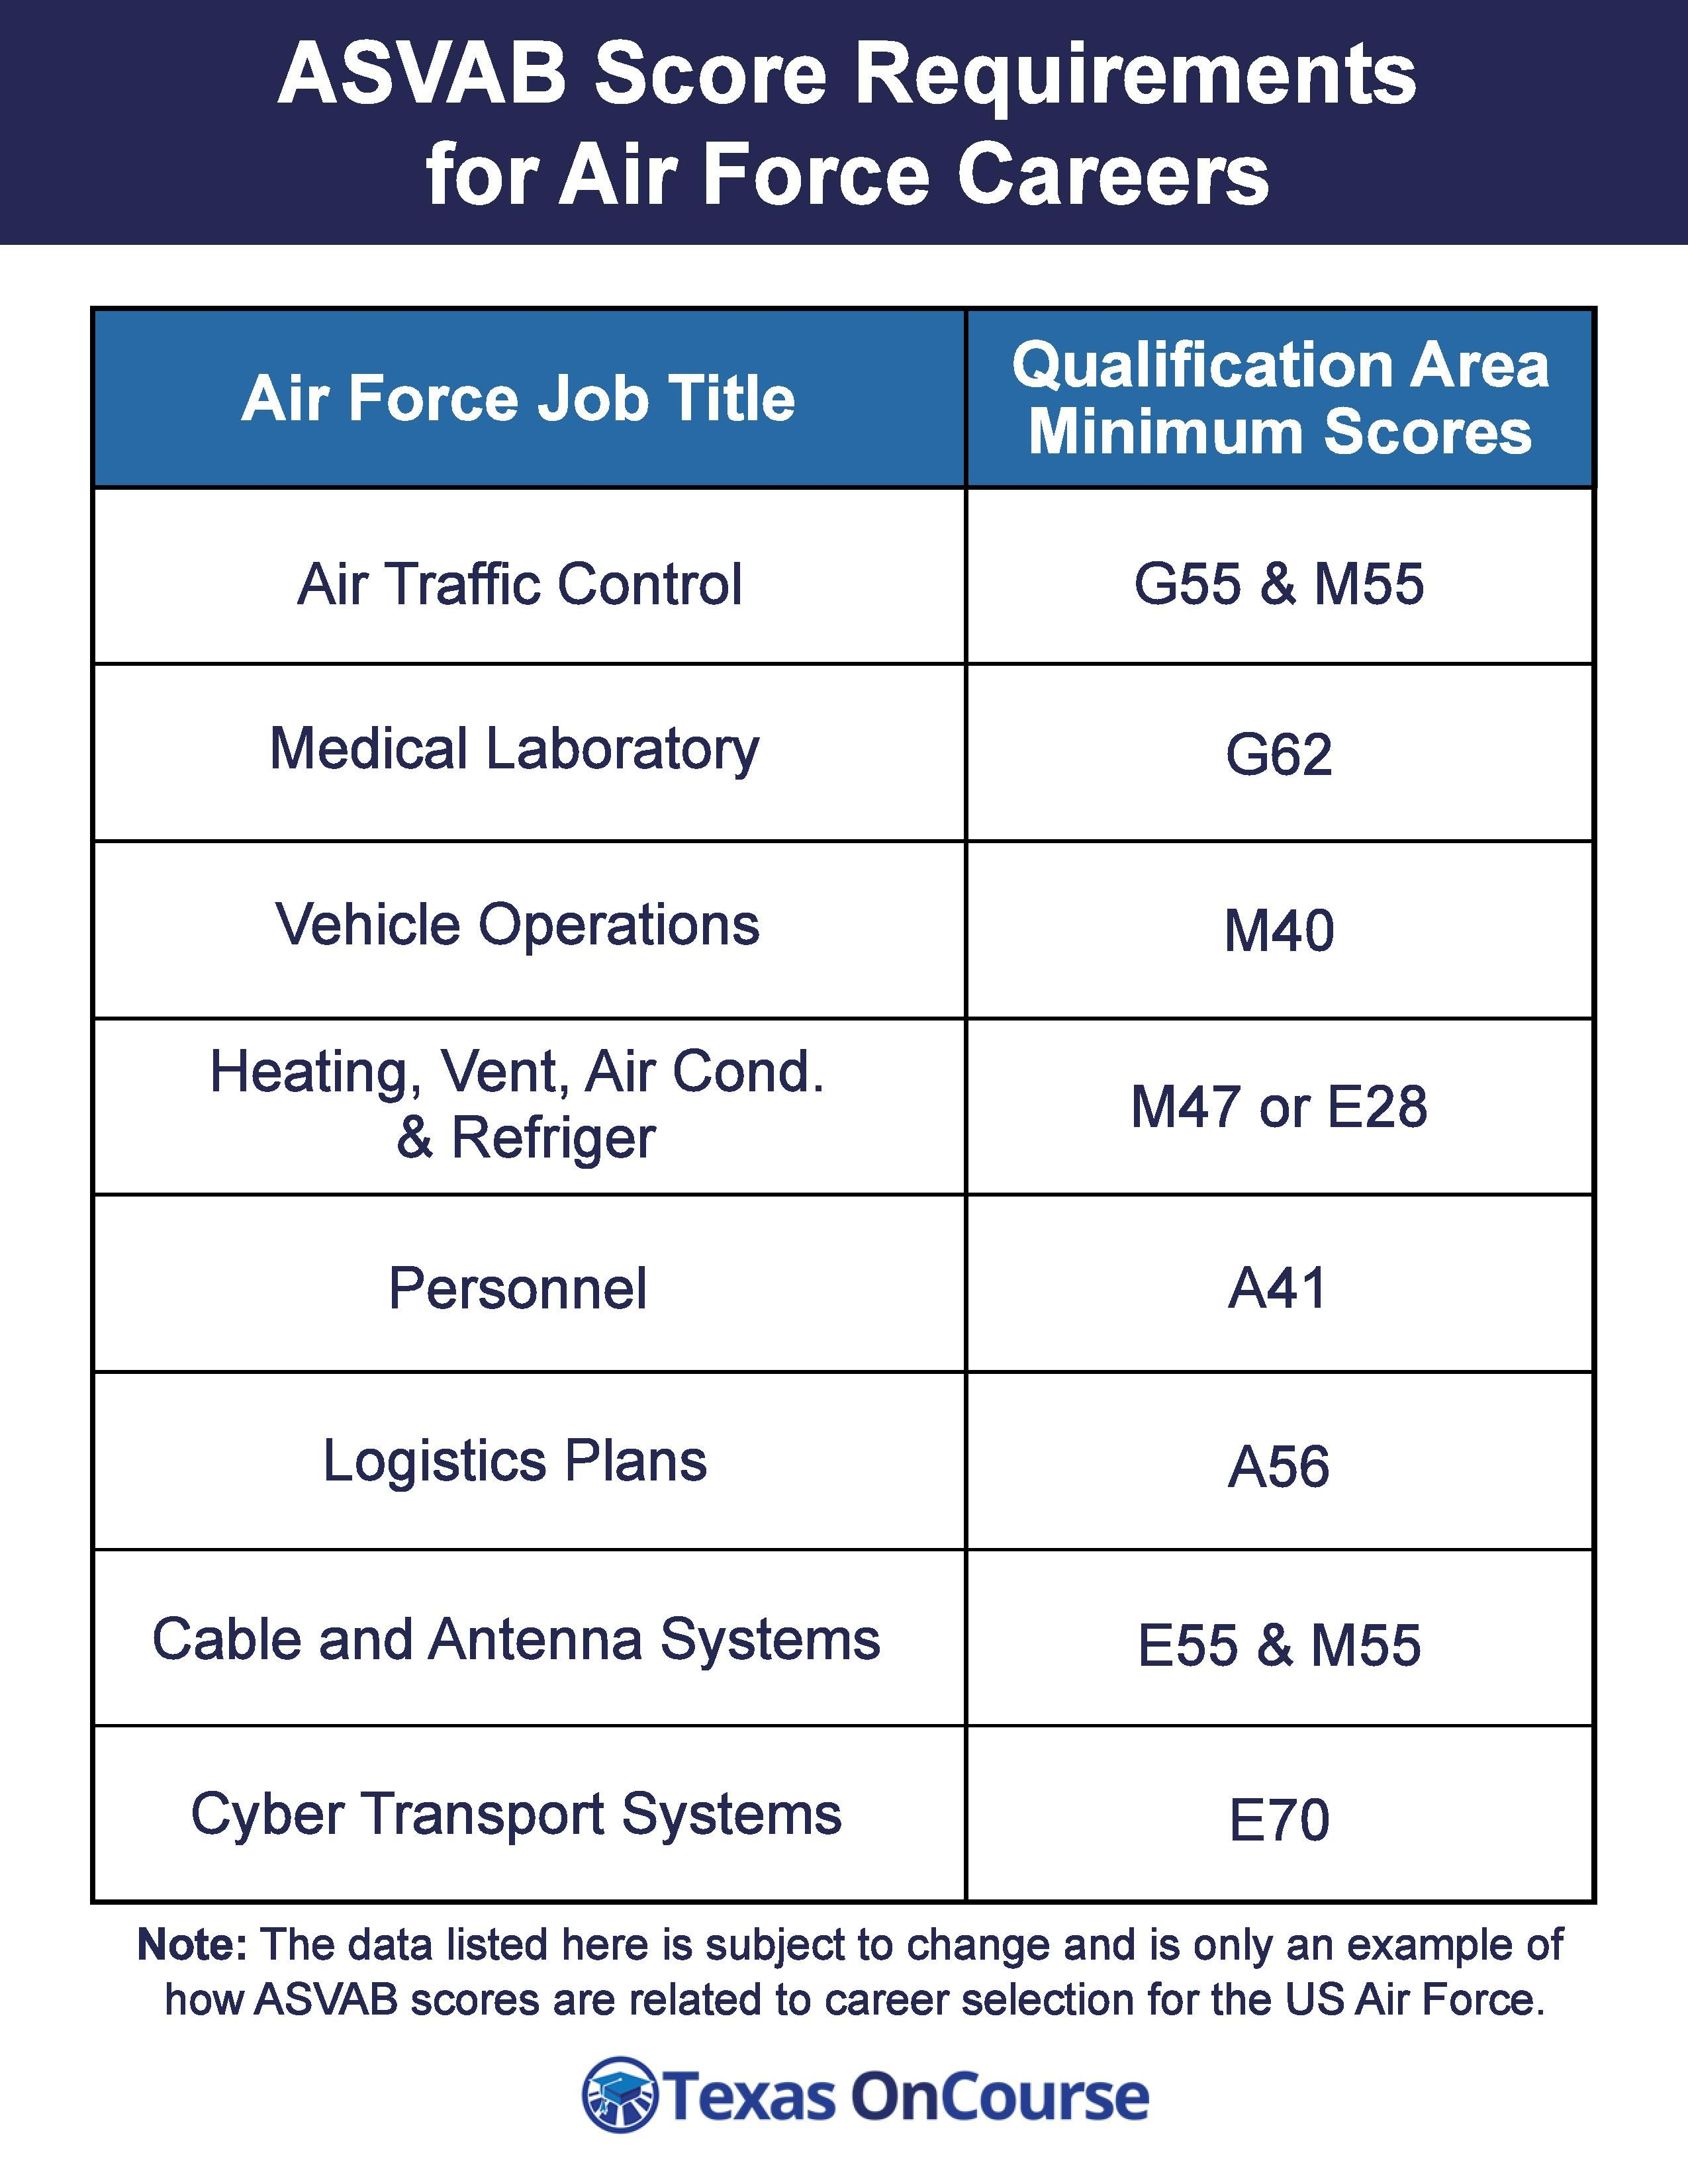 Air Force Career Examples: Explore the infographic below to